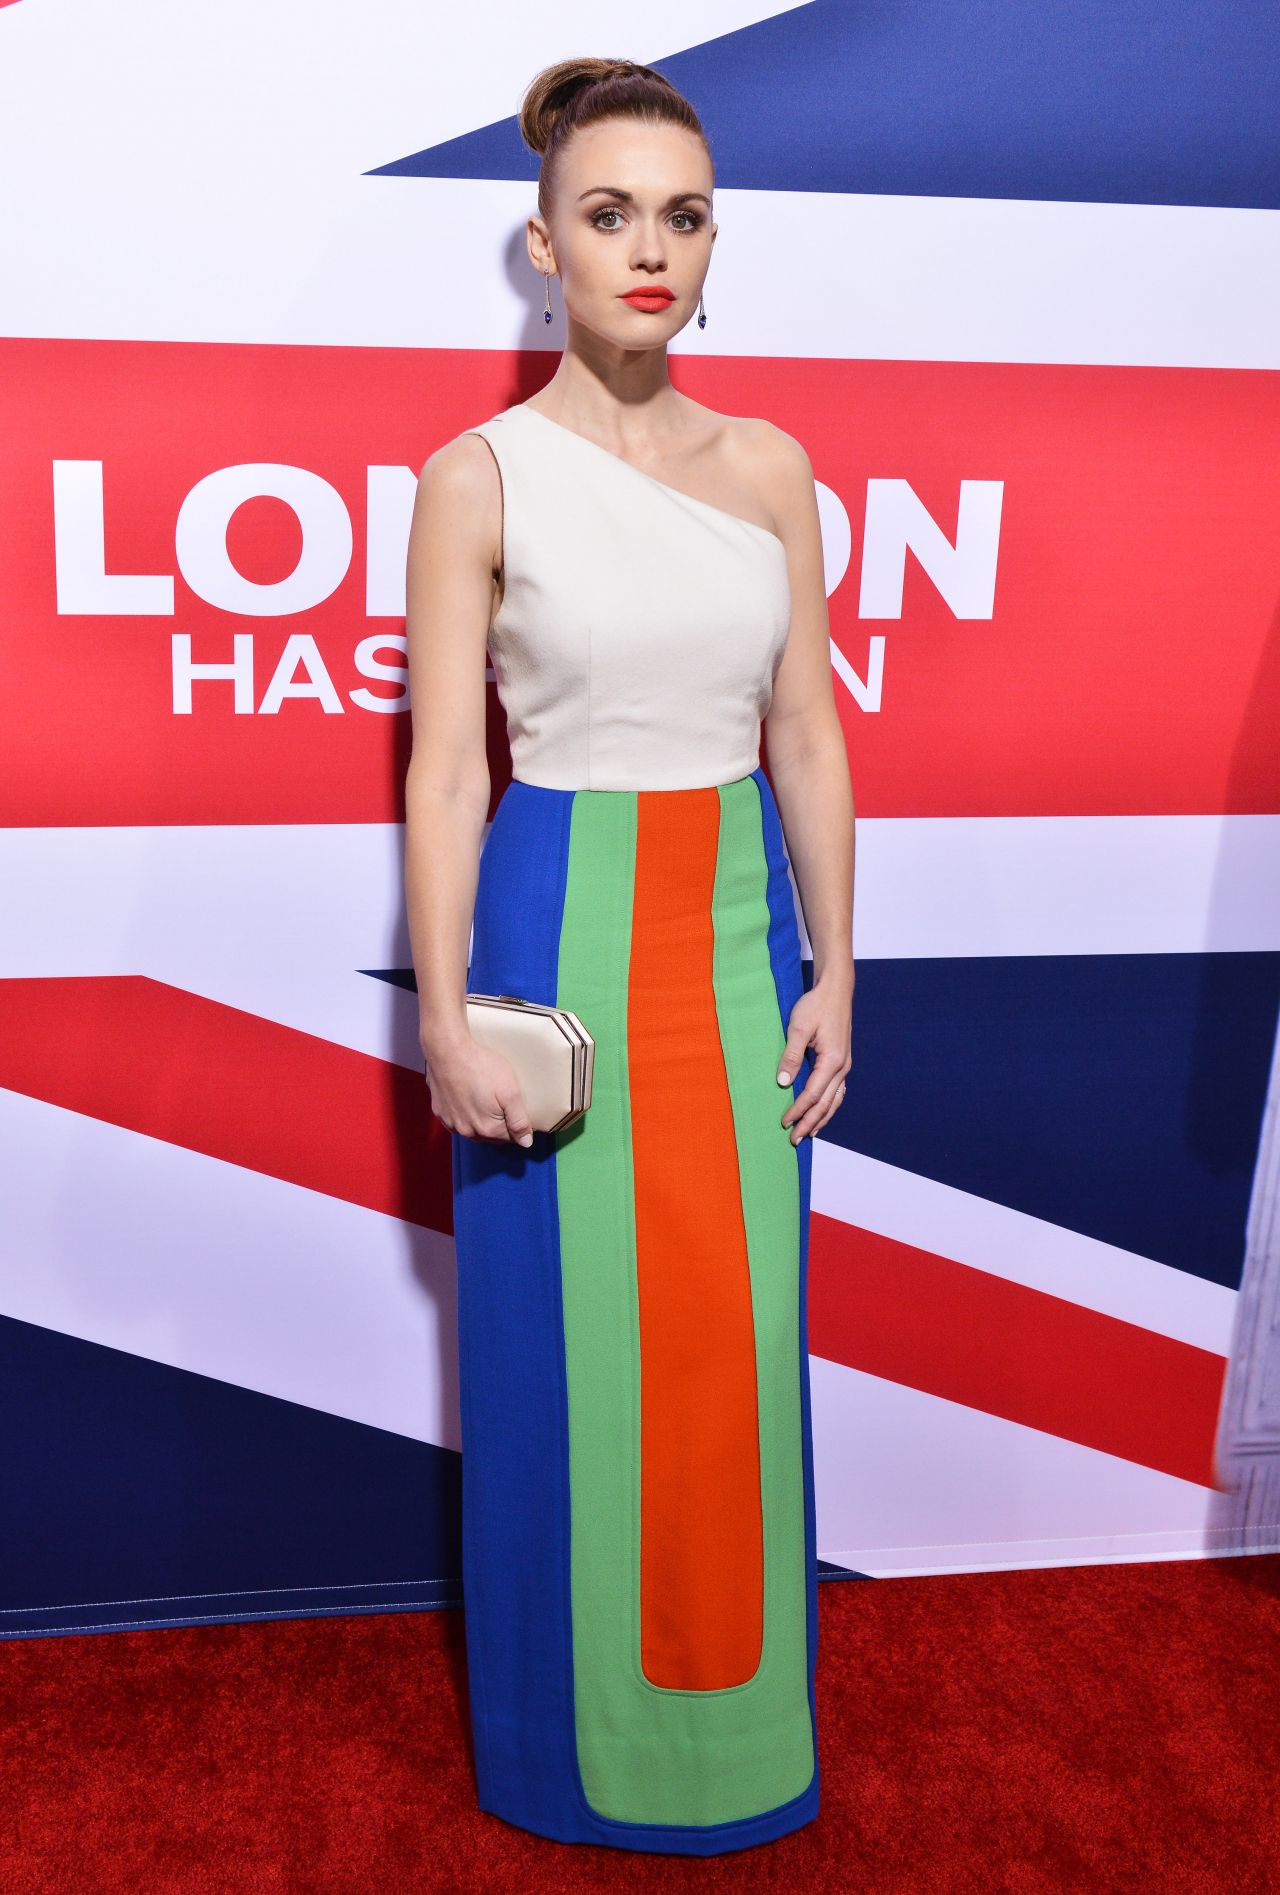 holland-roden-london-has-fallen-premiere-in-hollywood-2